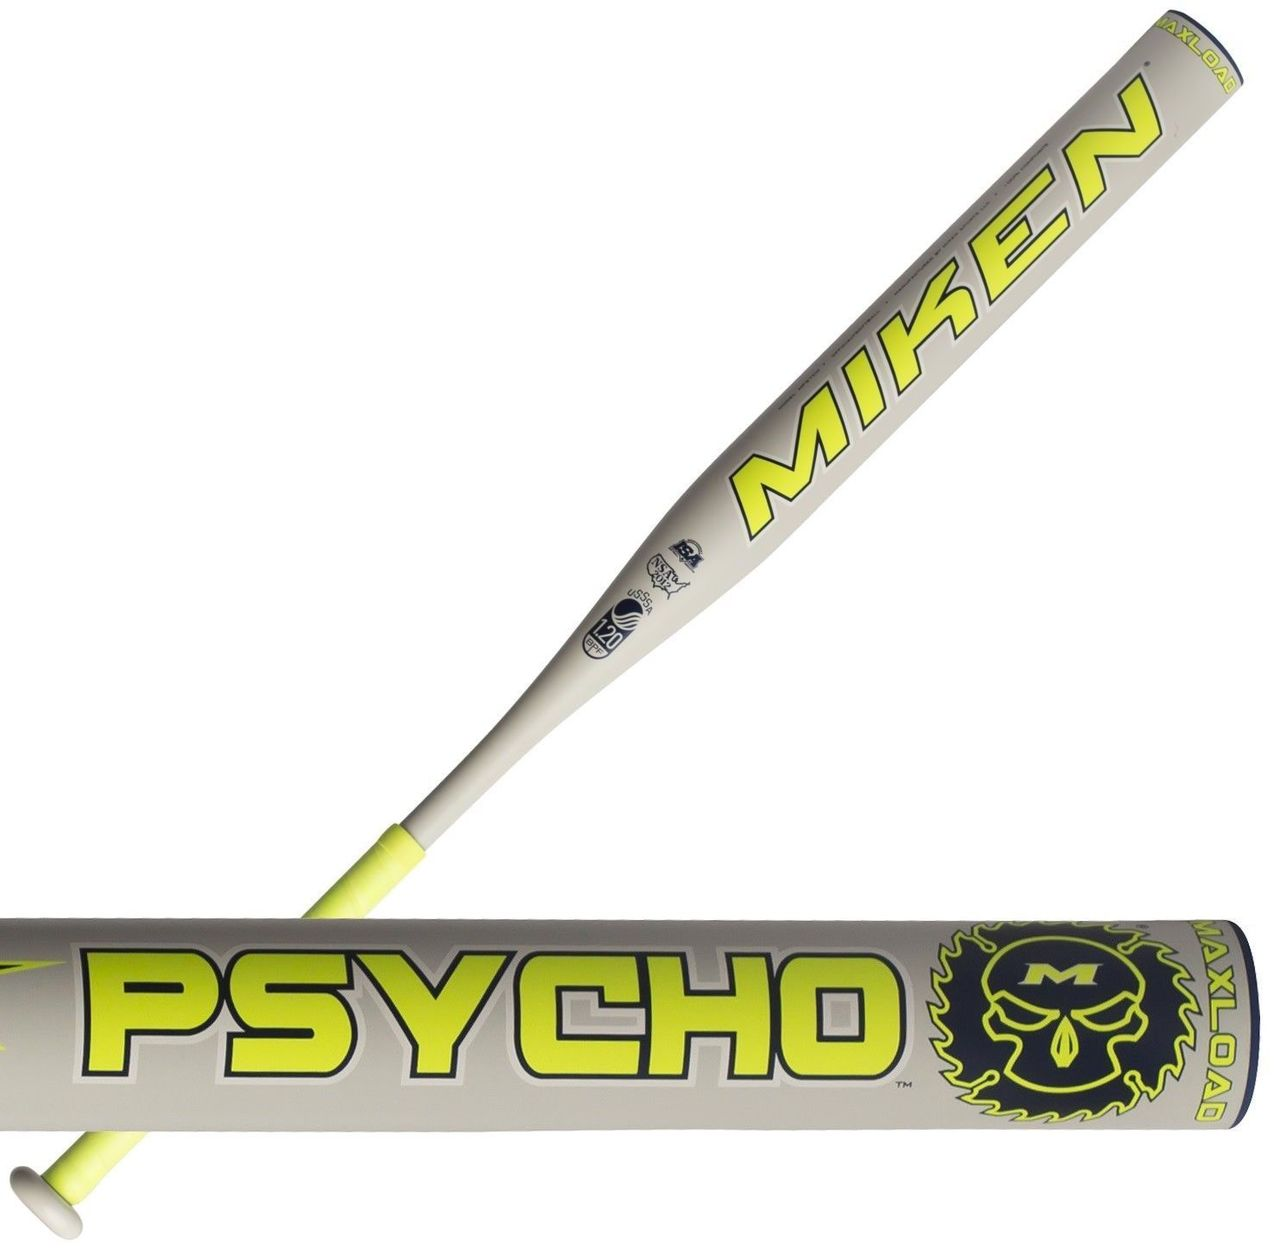 miken-psycho-max-usssa-slowpitch-softball-bat-mpsyco-34-inch-26-oz MPSYCO-3-26 Miken 658925040788 Miken one piece composite slowpitch USSSA softball bat.Miken slow pitch bats